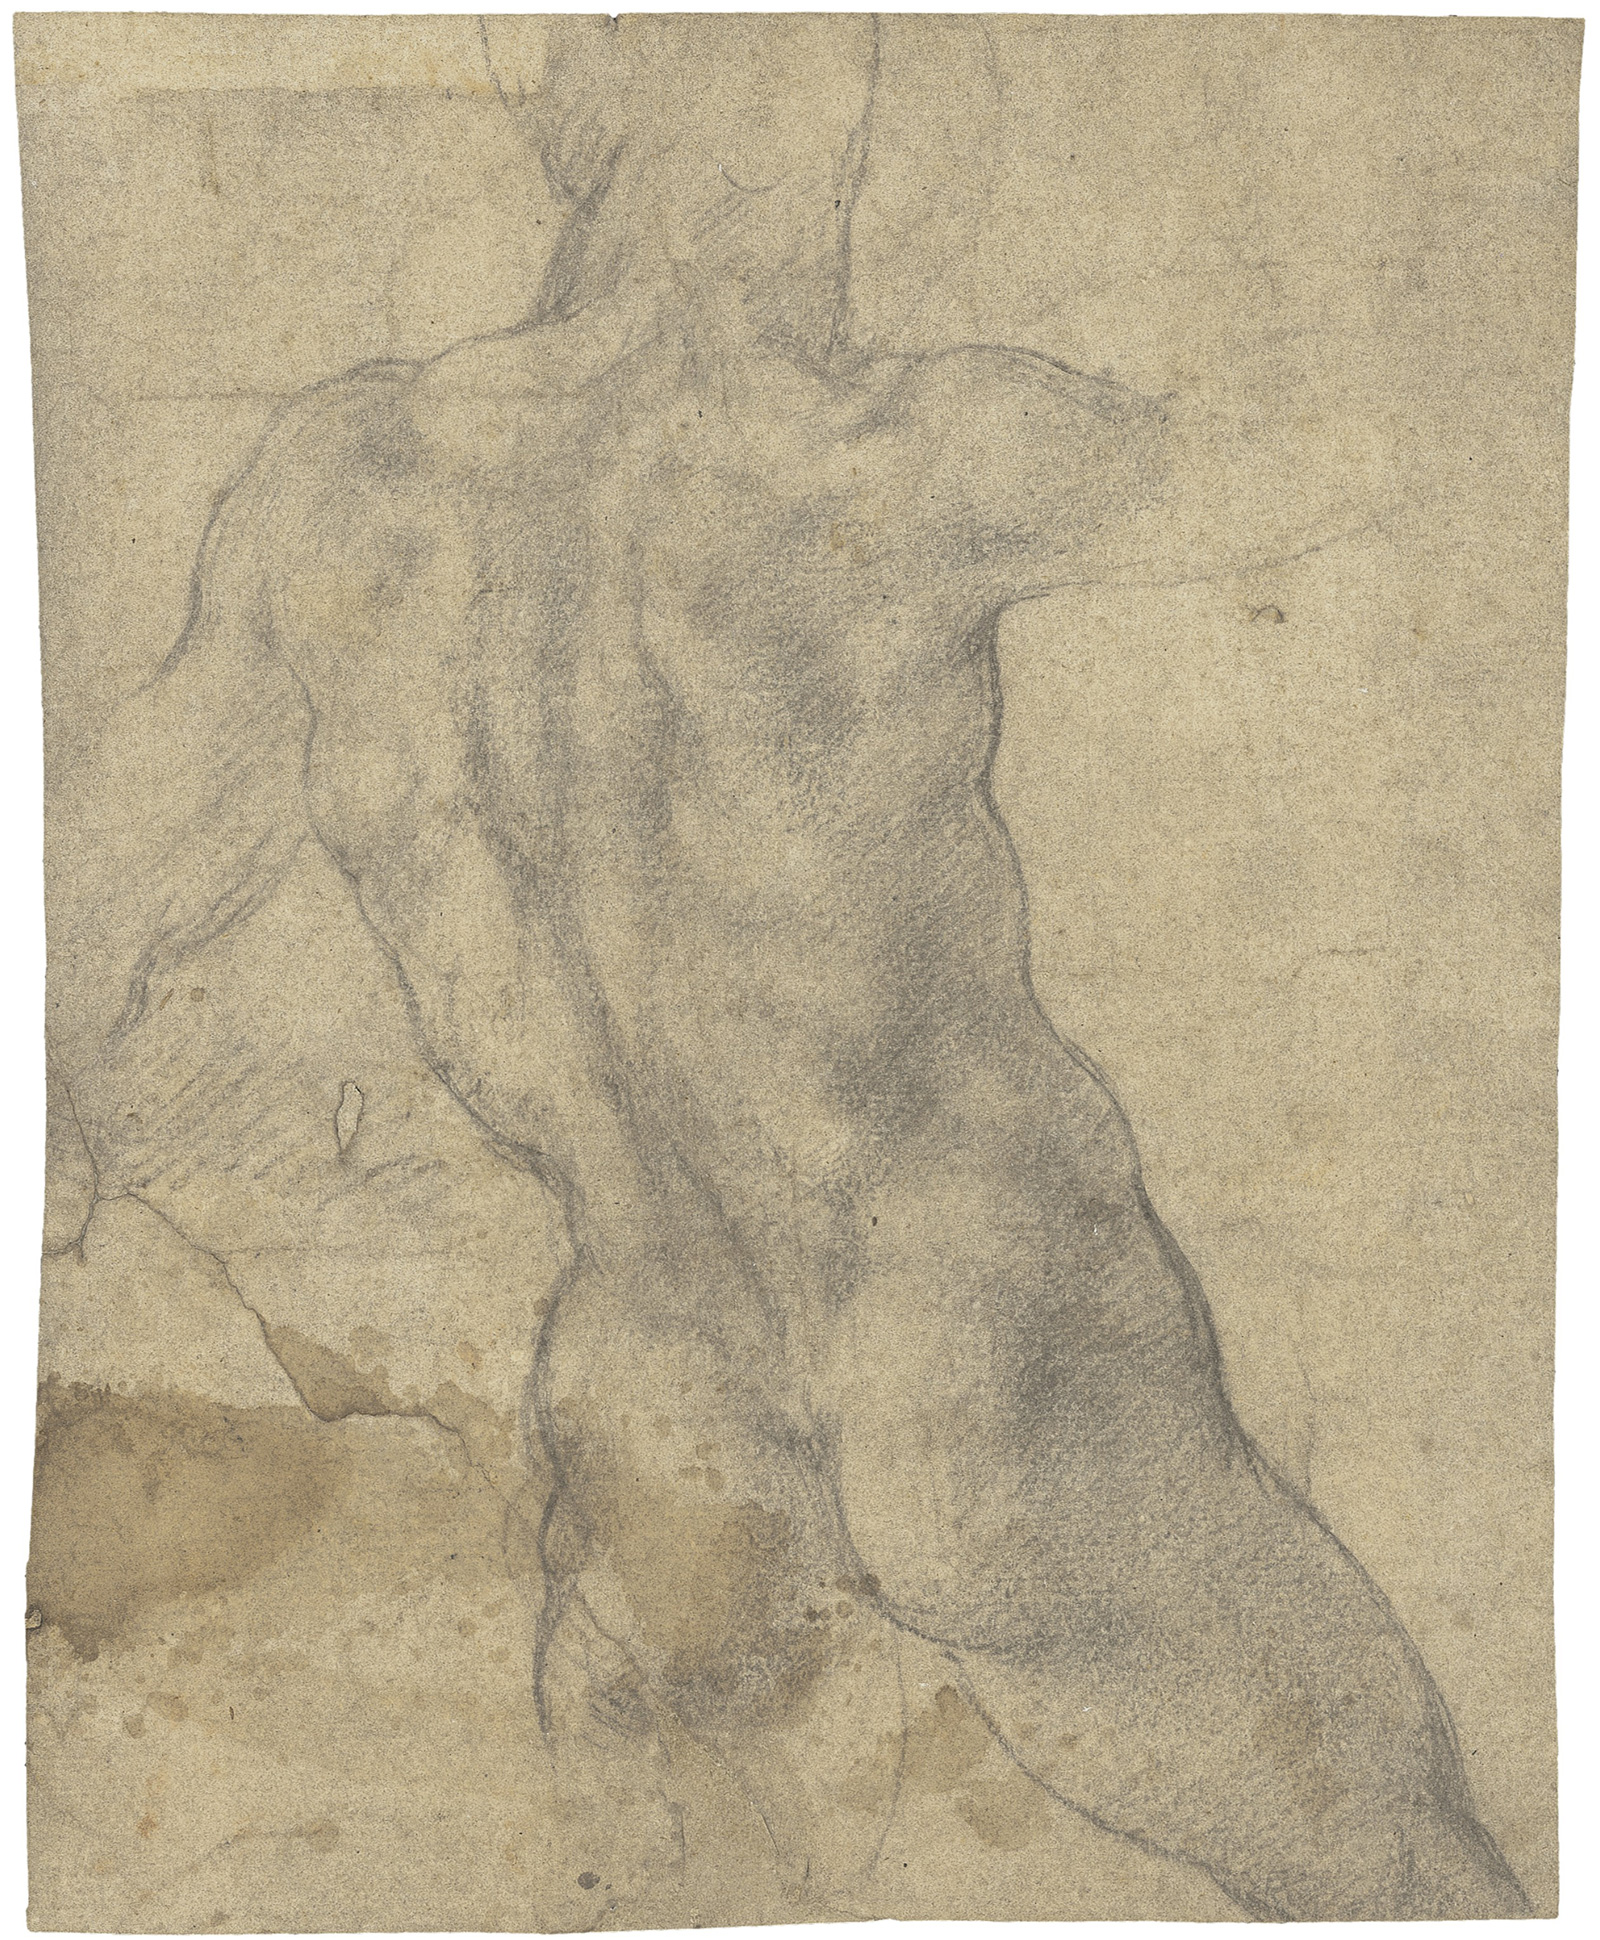 Michelangelo&#8217;s Original Drawing To Fetch $5-8 Million